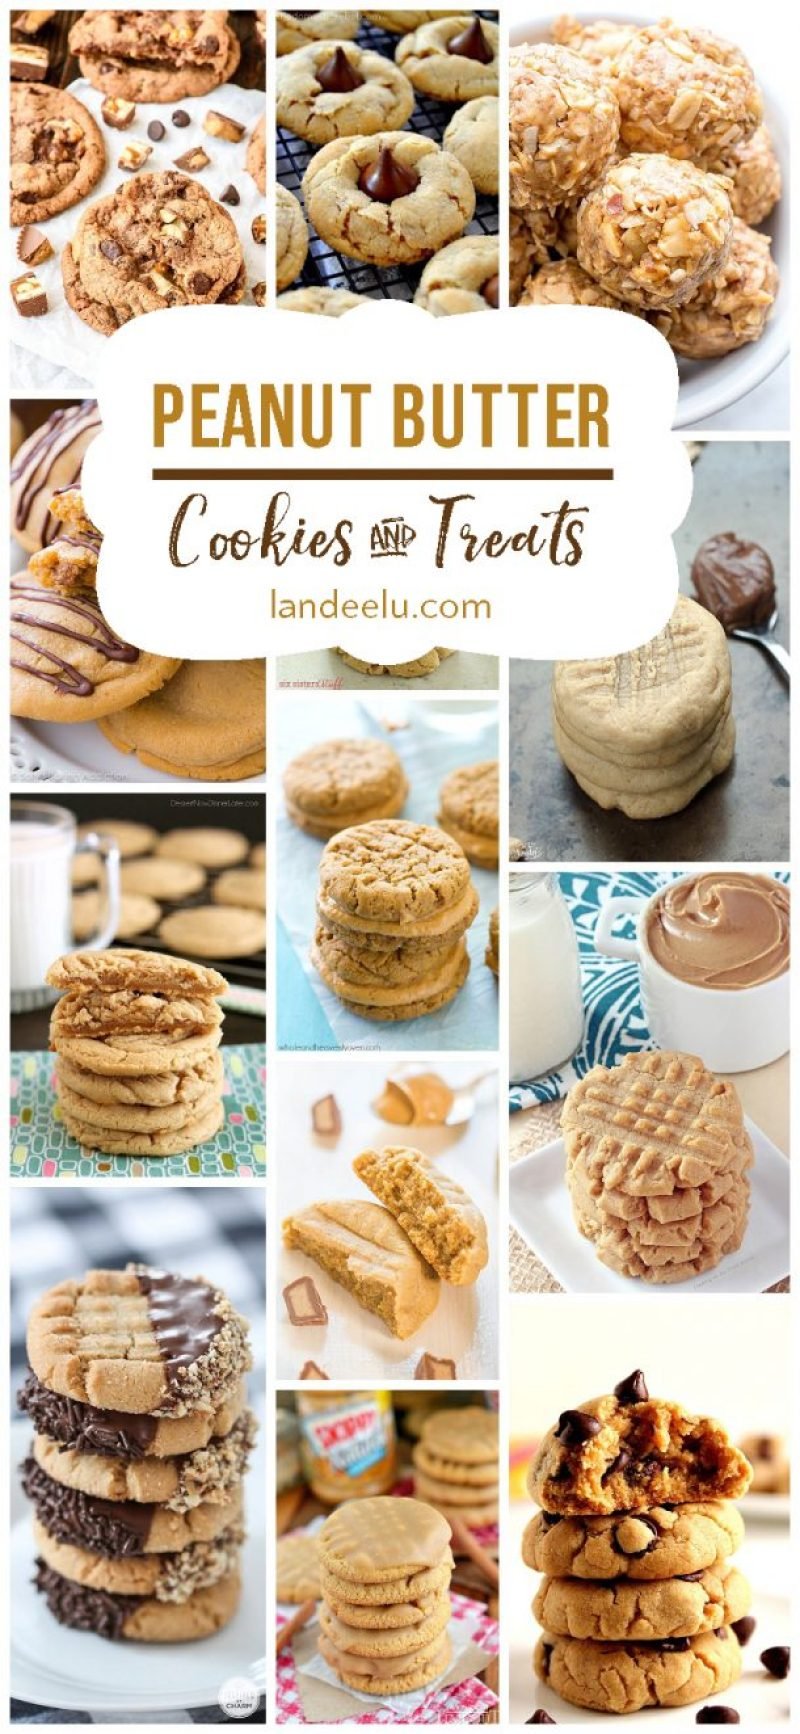 Peanut Butter Cookie Recipe Round Up